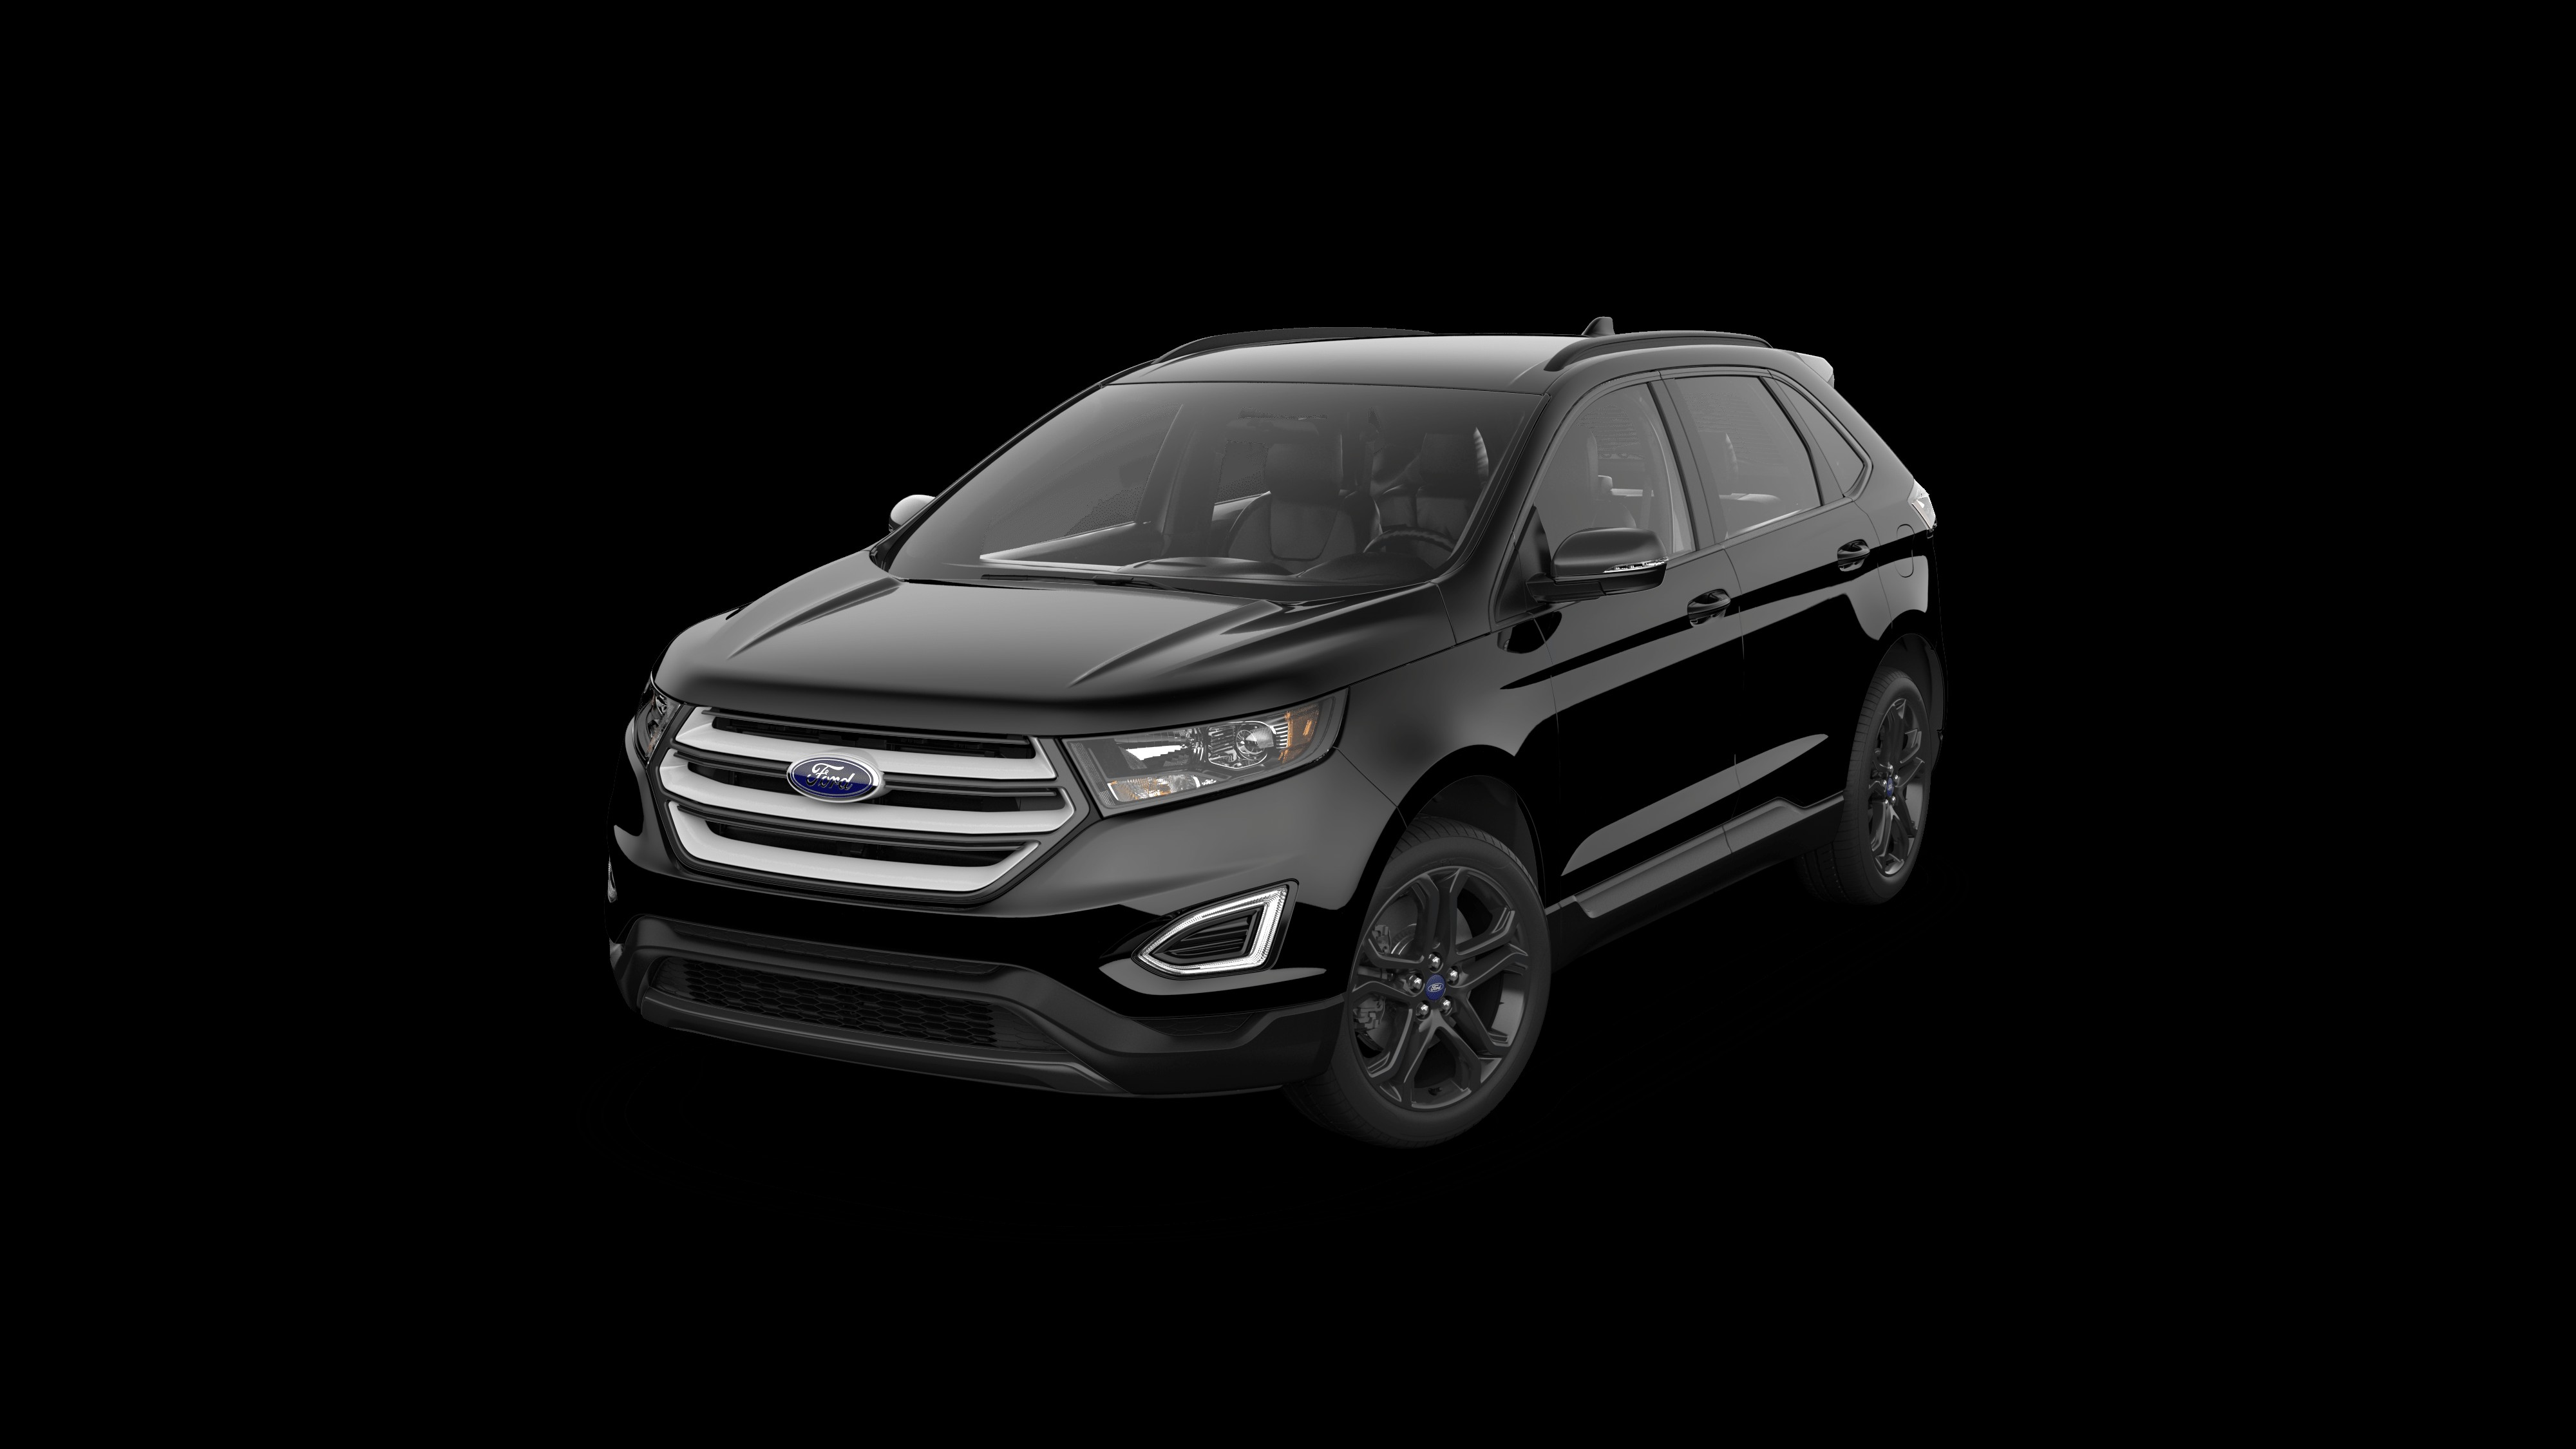 2007 ford Edge Engine Diagram 2018 ford Edge for Sale In Louisville 2fmpk4j87jbb byerly ford Of 2007 ford Edge Engine Diagram